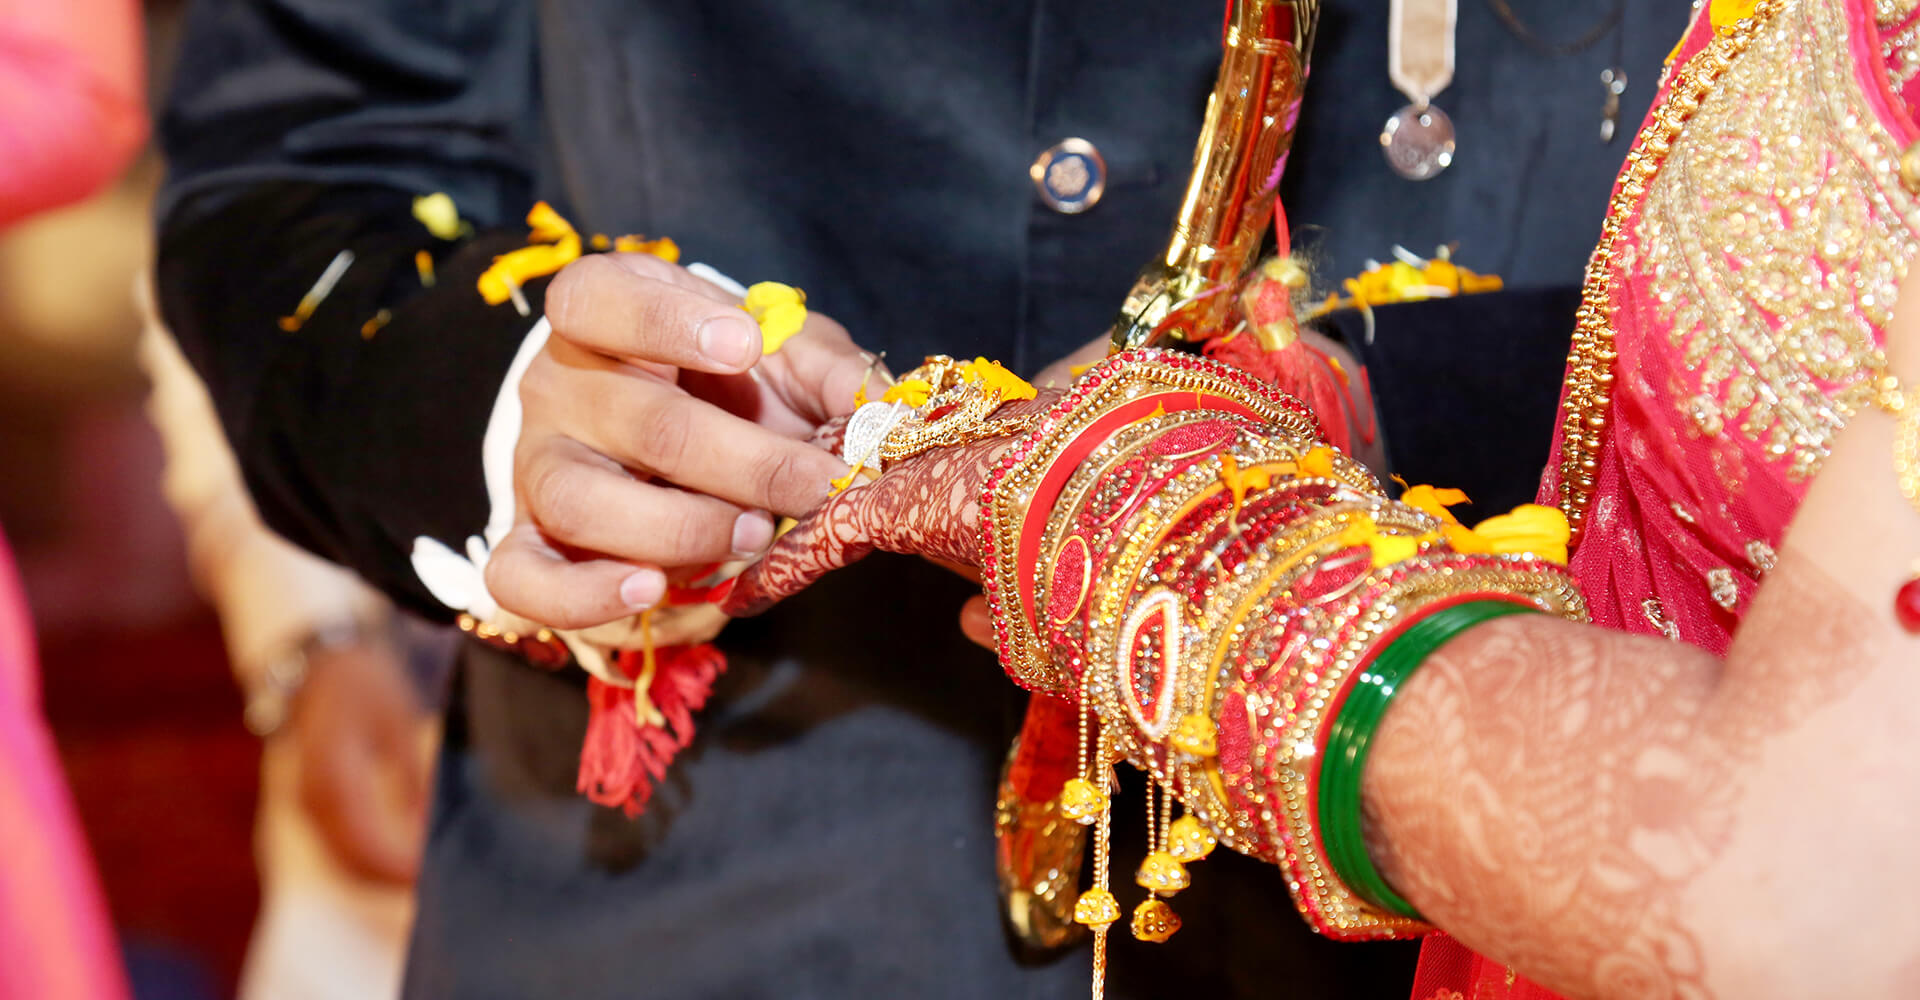 close-up of hands of indian groom placing wedding ring on his bride at an indian wedding